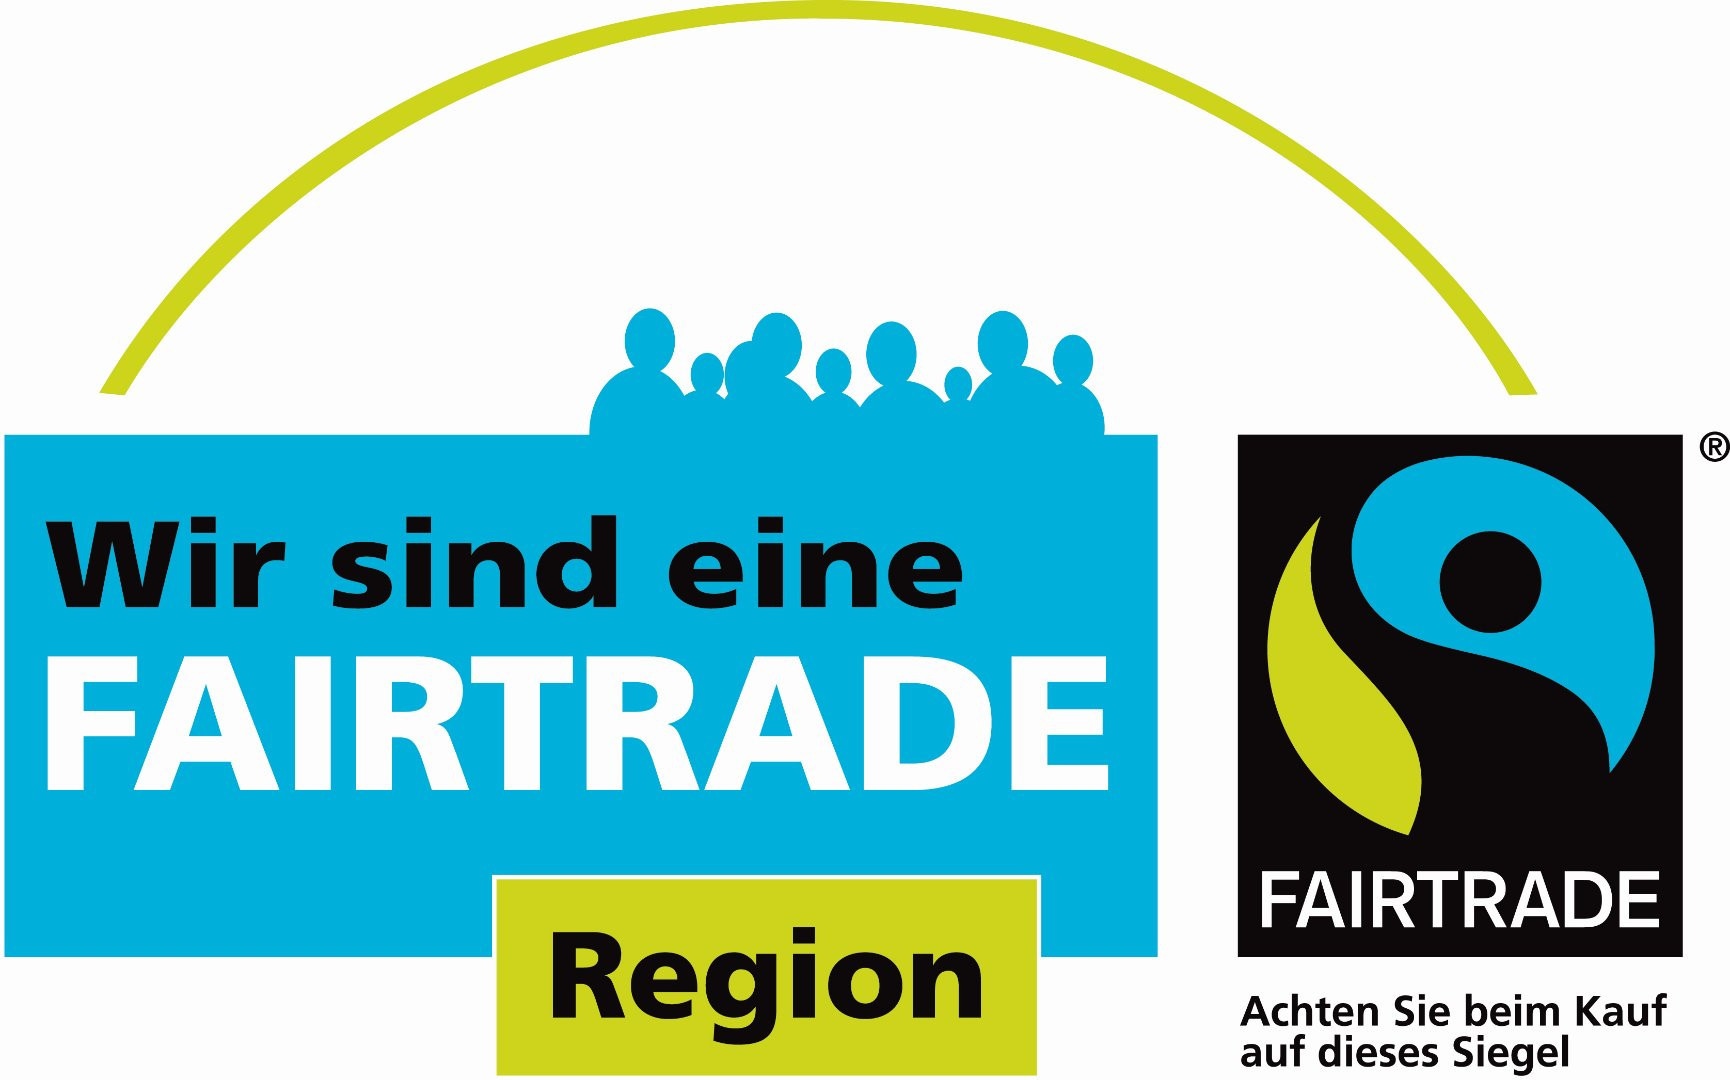 WirsindFairtradeRegion.jpg